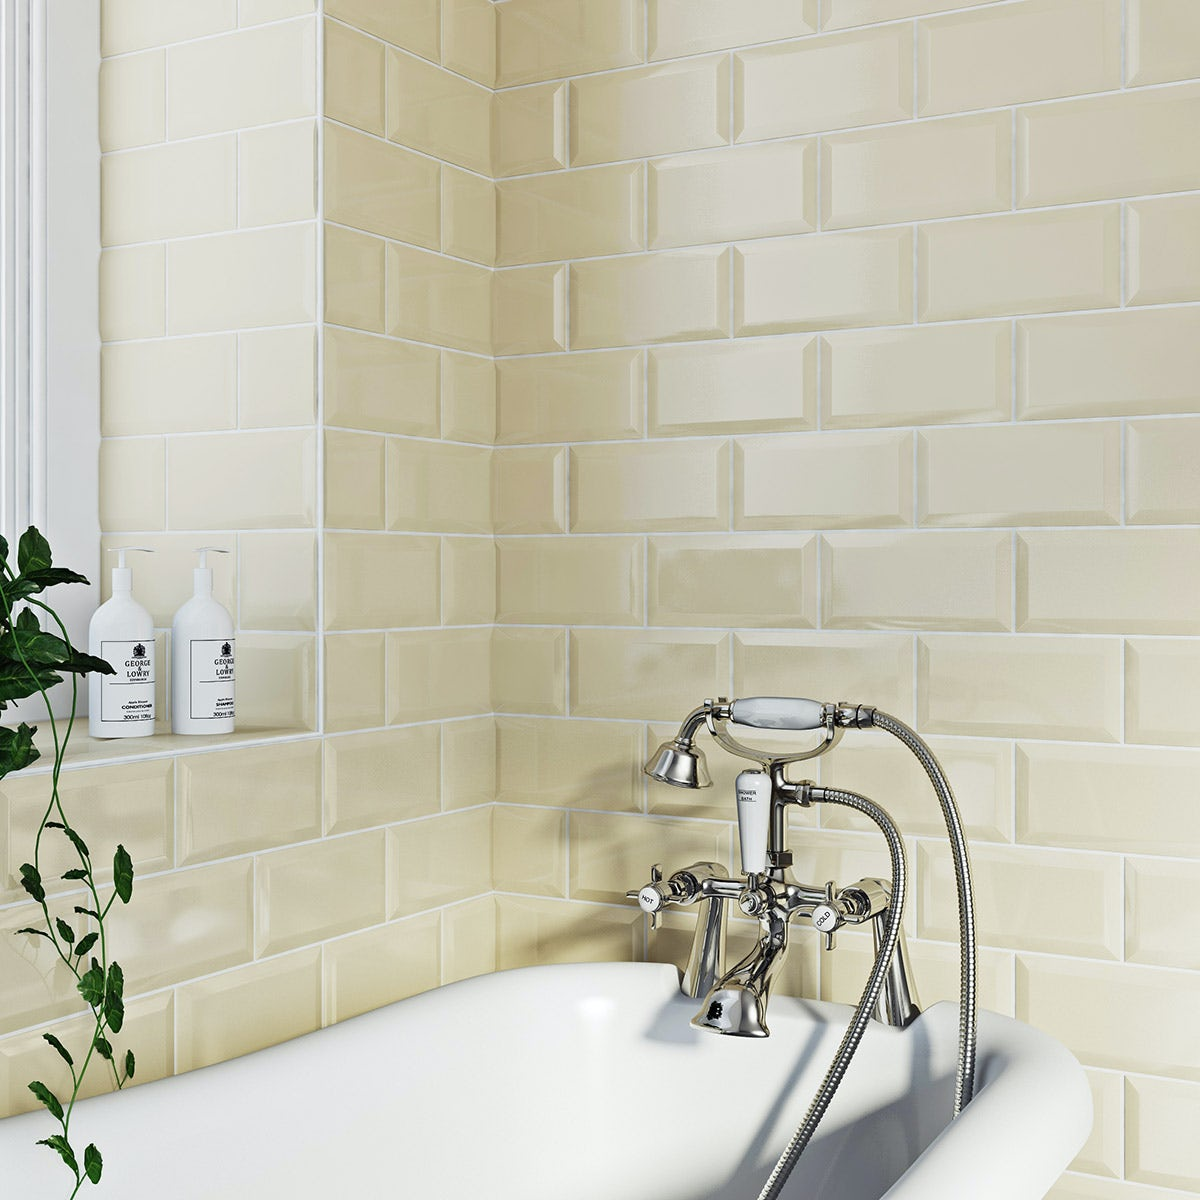 British Ceramic Tile Metro Bevel Cream Gloss Tile 100mm X